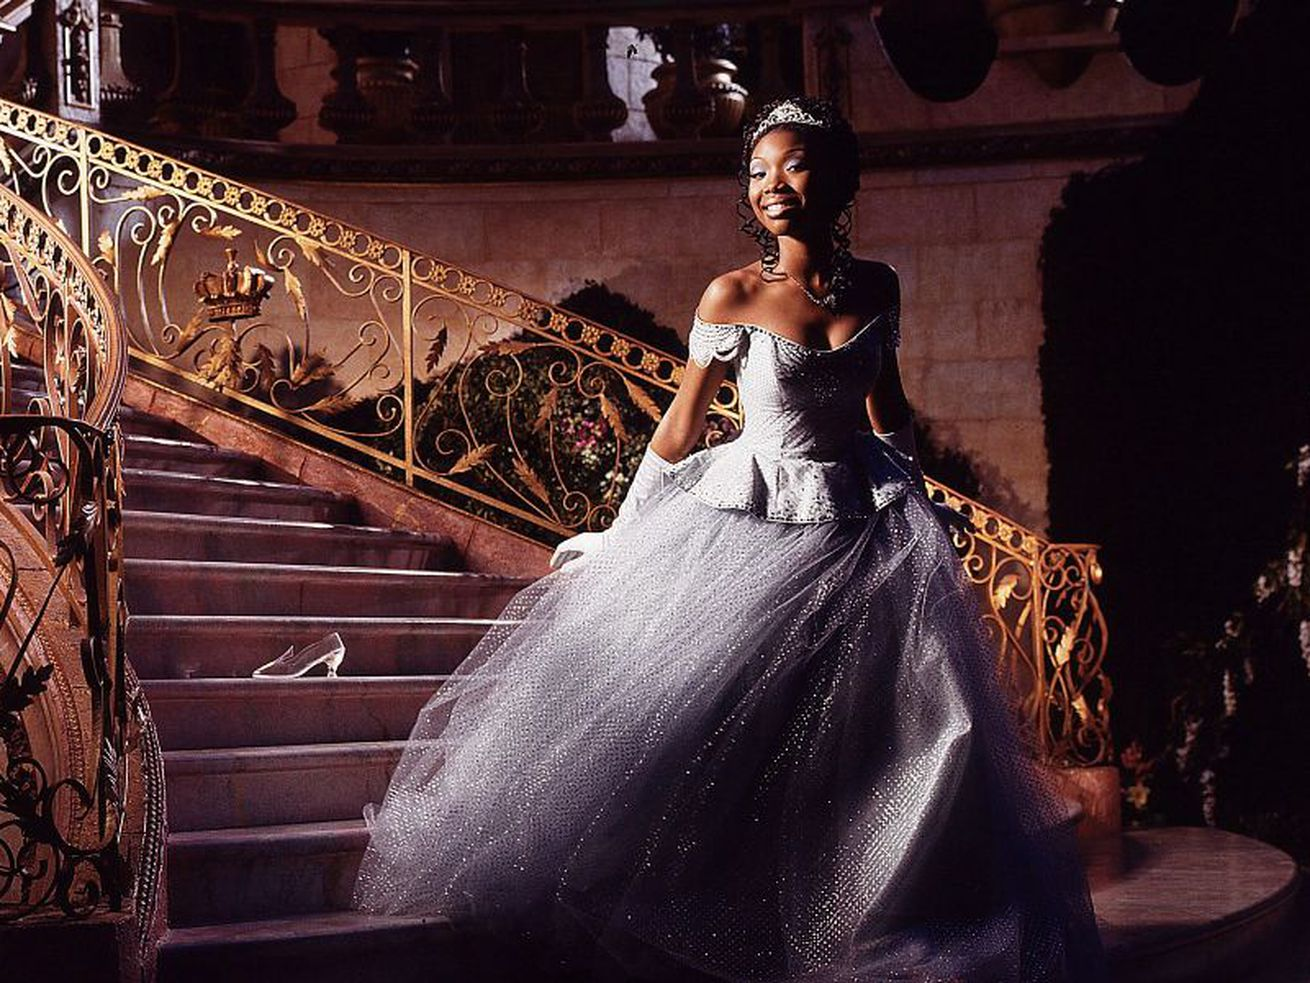 Brandy, dressed in a ballgown and tiara, steps down a sweeping staircase.